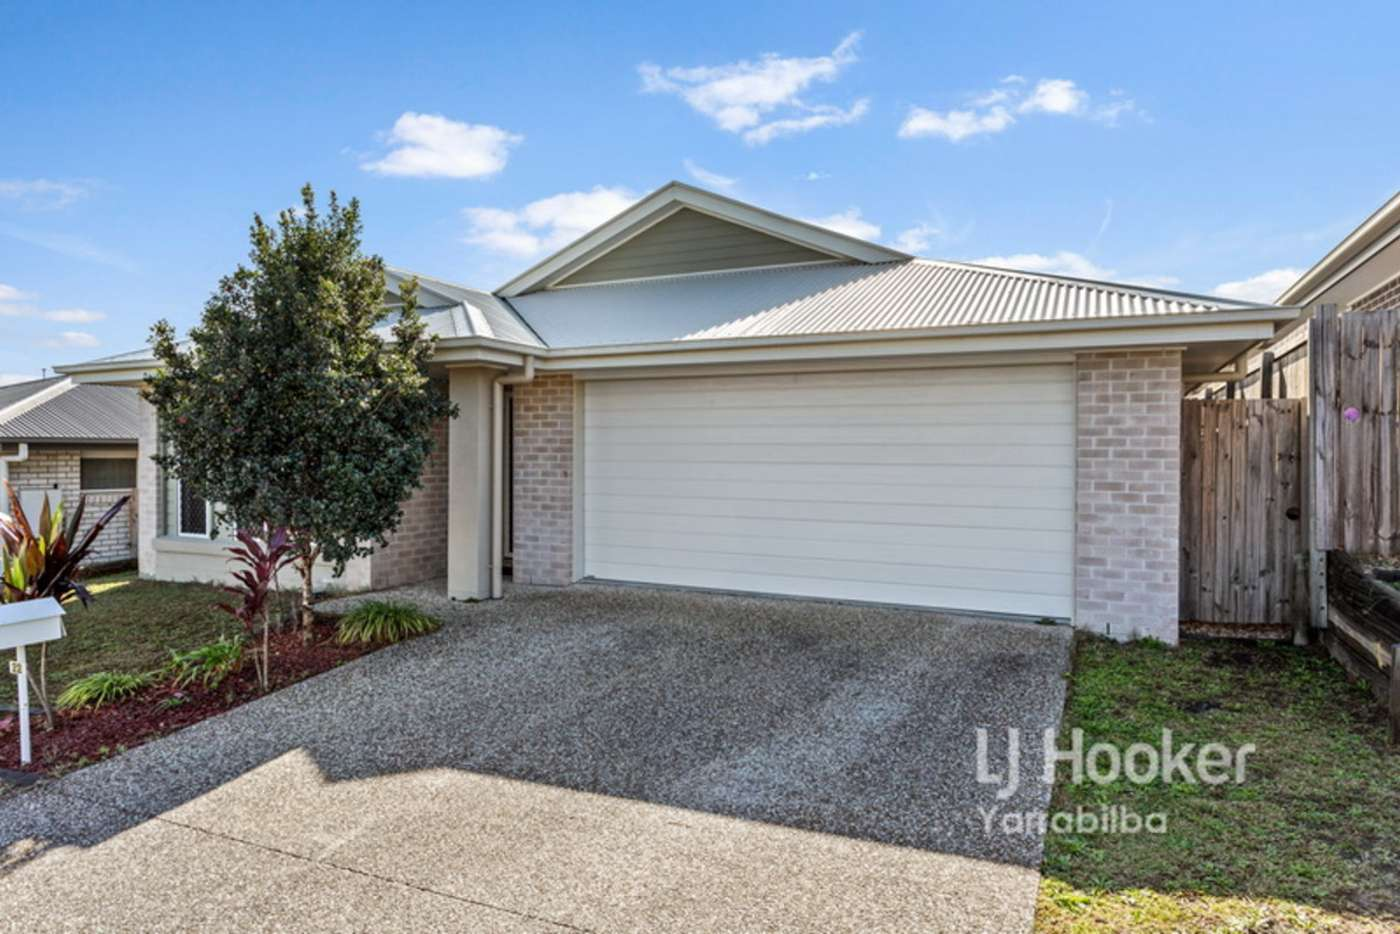 Fifth view of Homely house listing, 22 Tappen Street, Yarrabilba QLD 4207